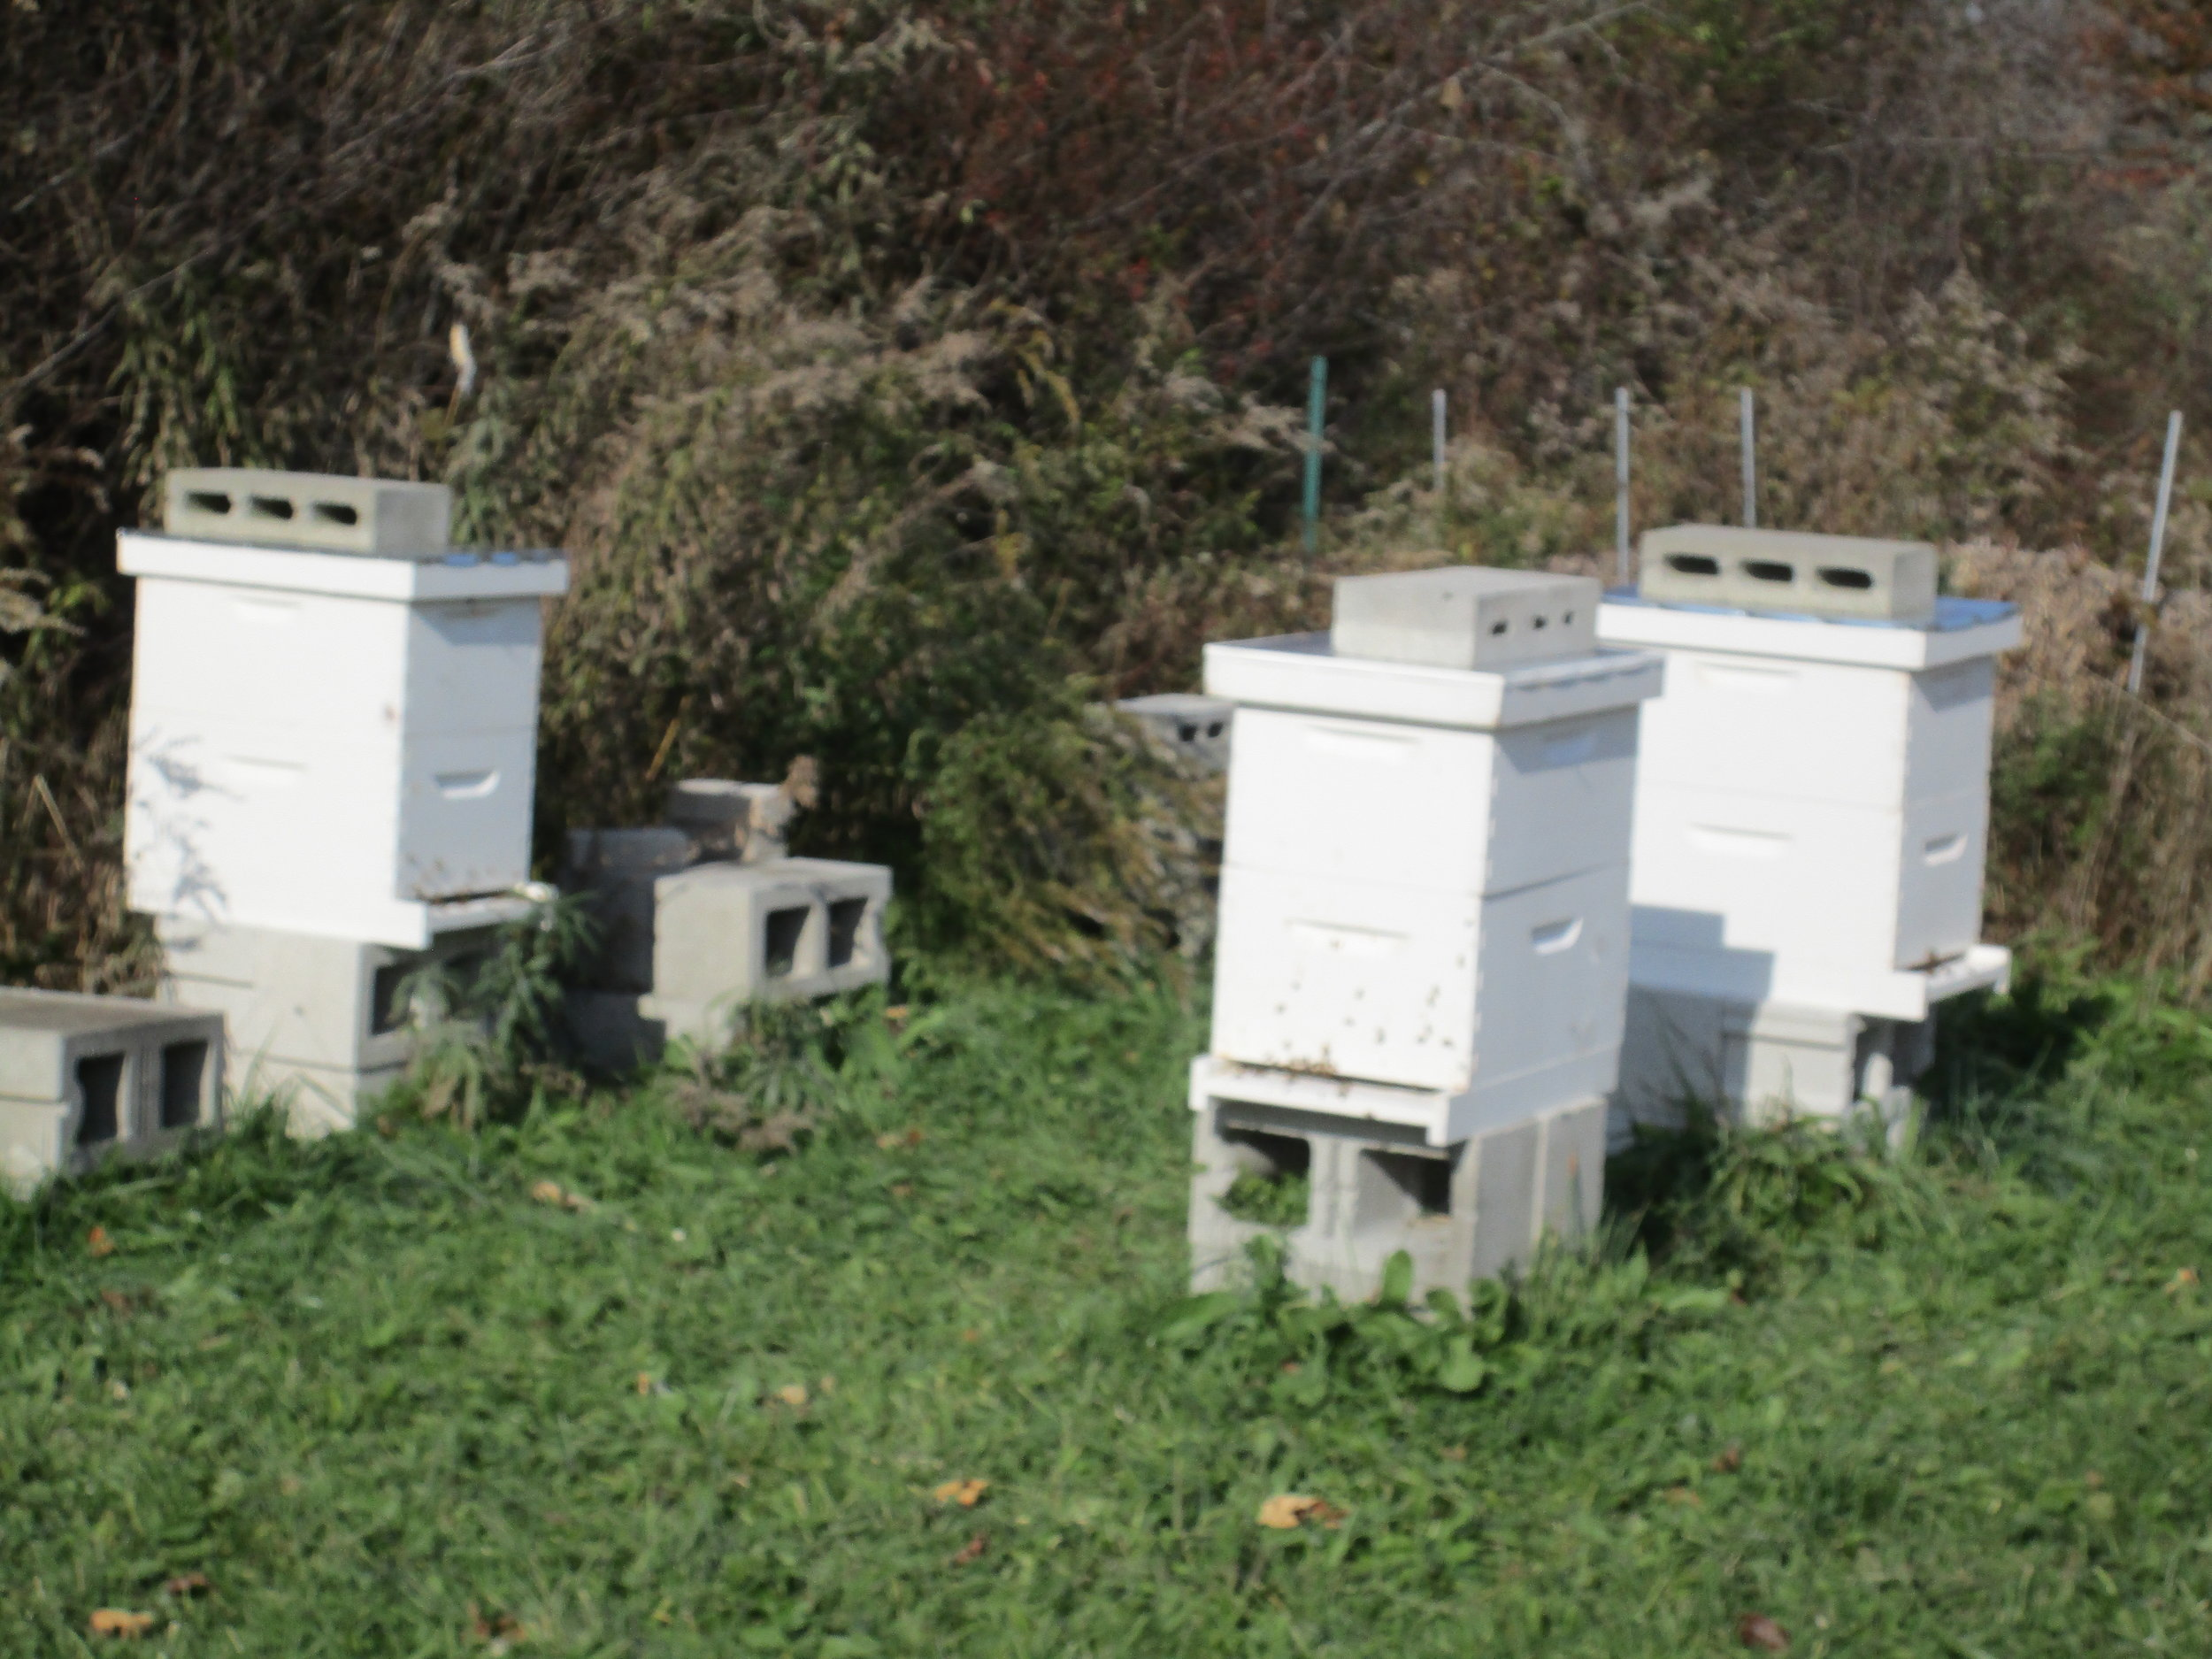 At least these three hives are going strong